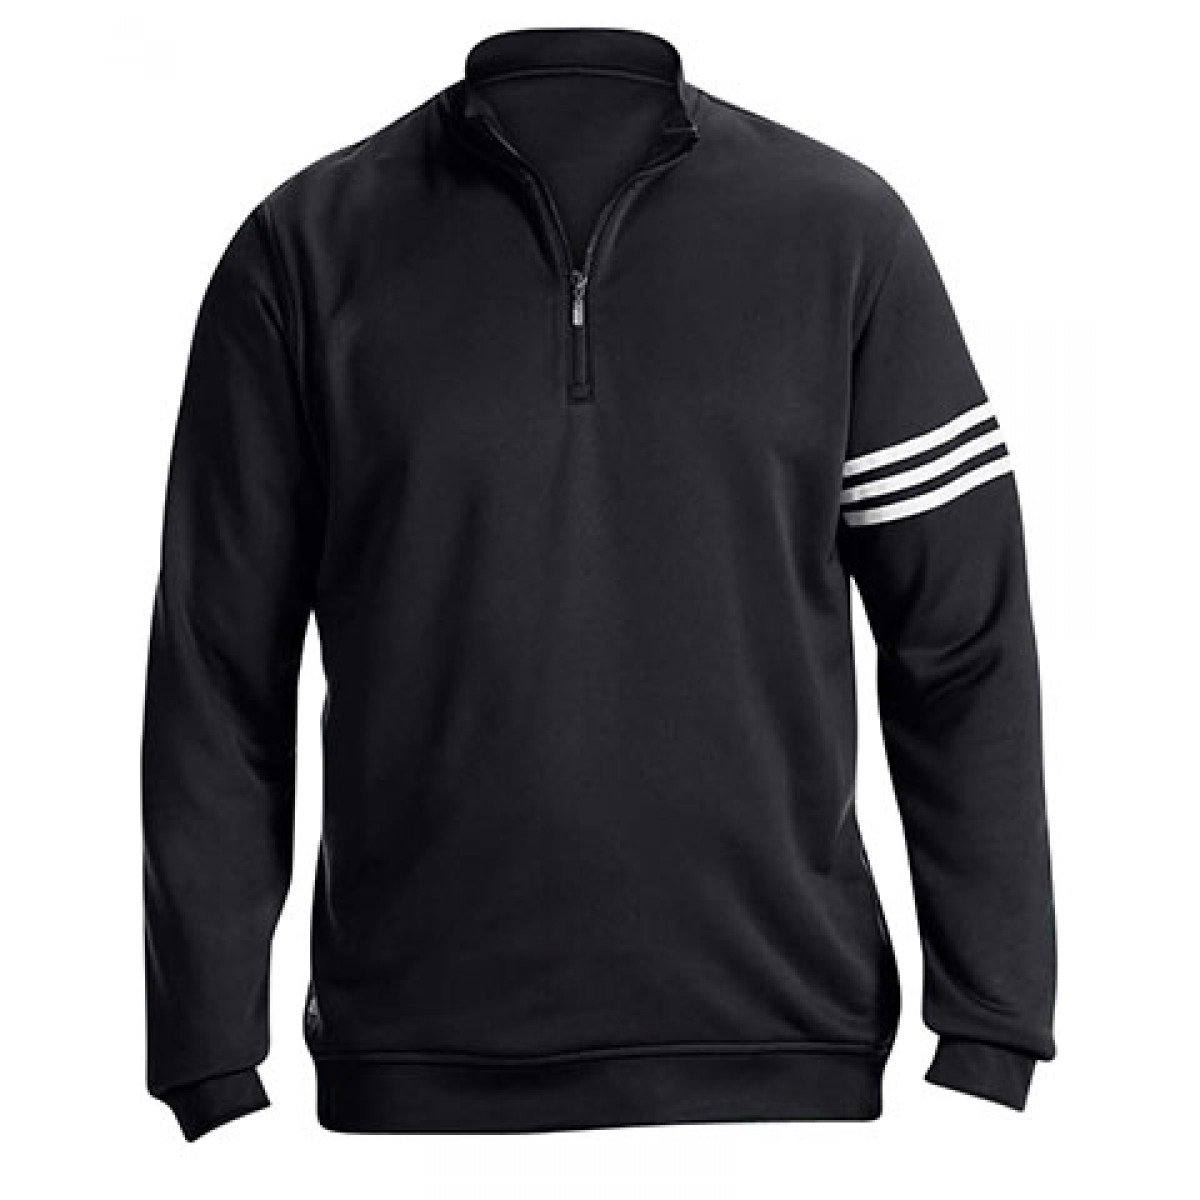 Adidas Golf Men's ClimaLite® 3-Stripes Pullover-Black-2XL